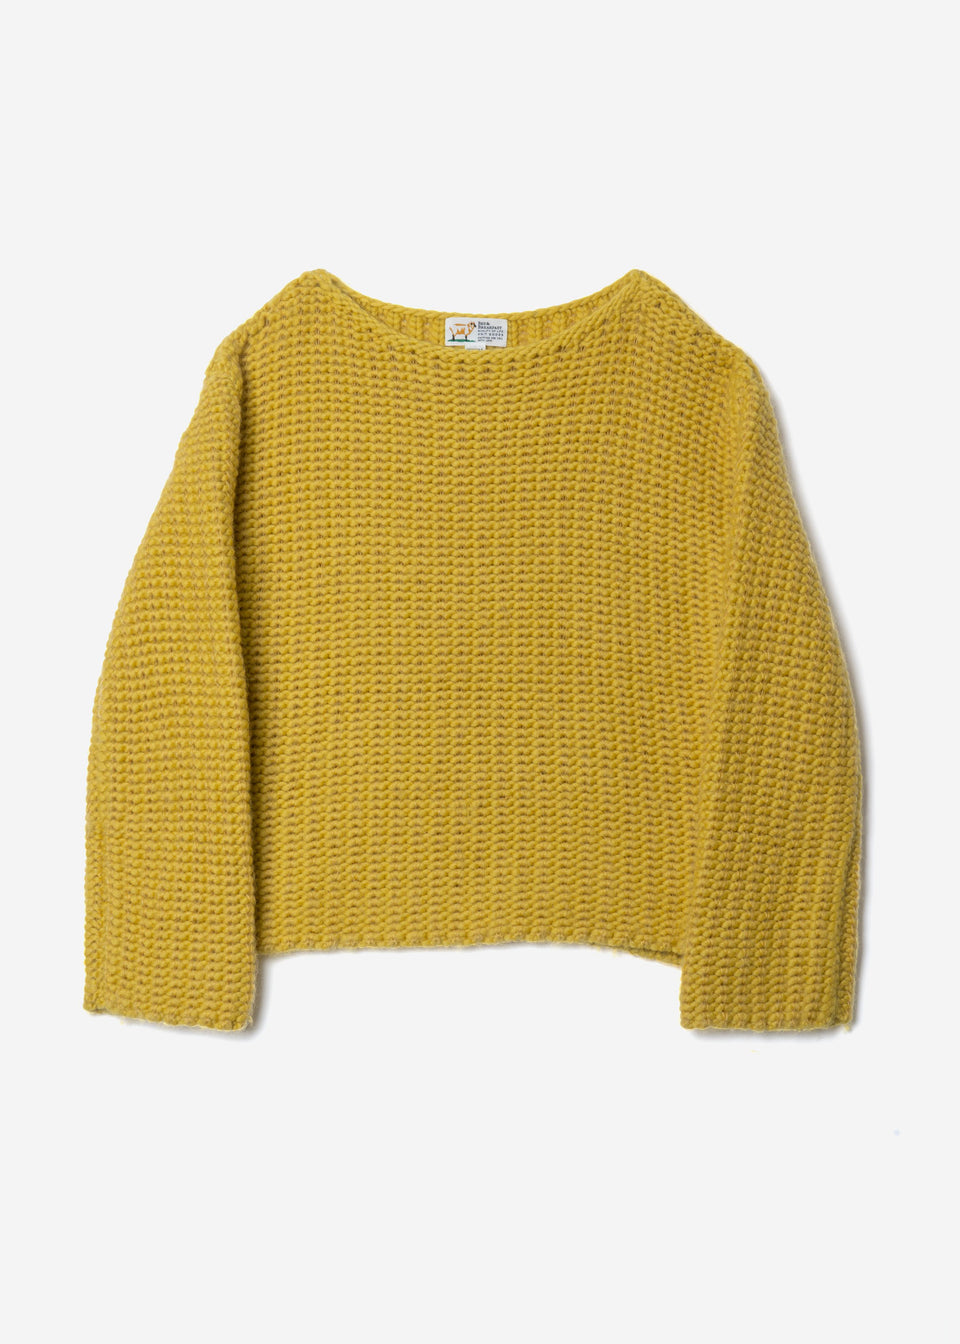 Roving Mohair Knit Tops in Yellow